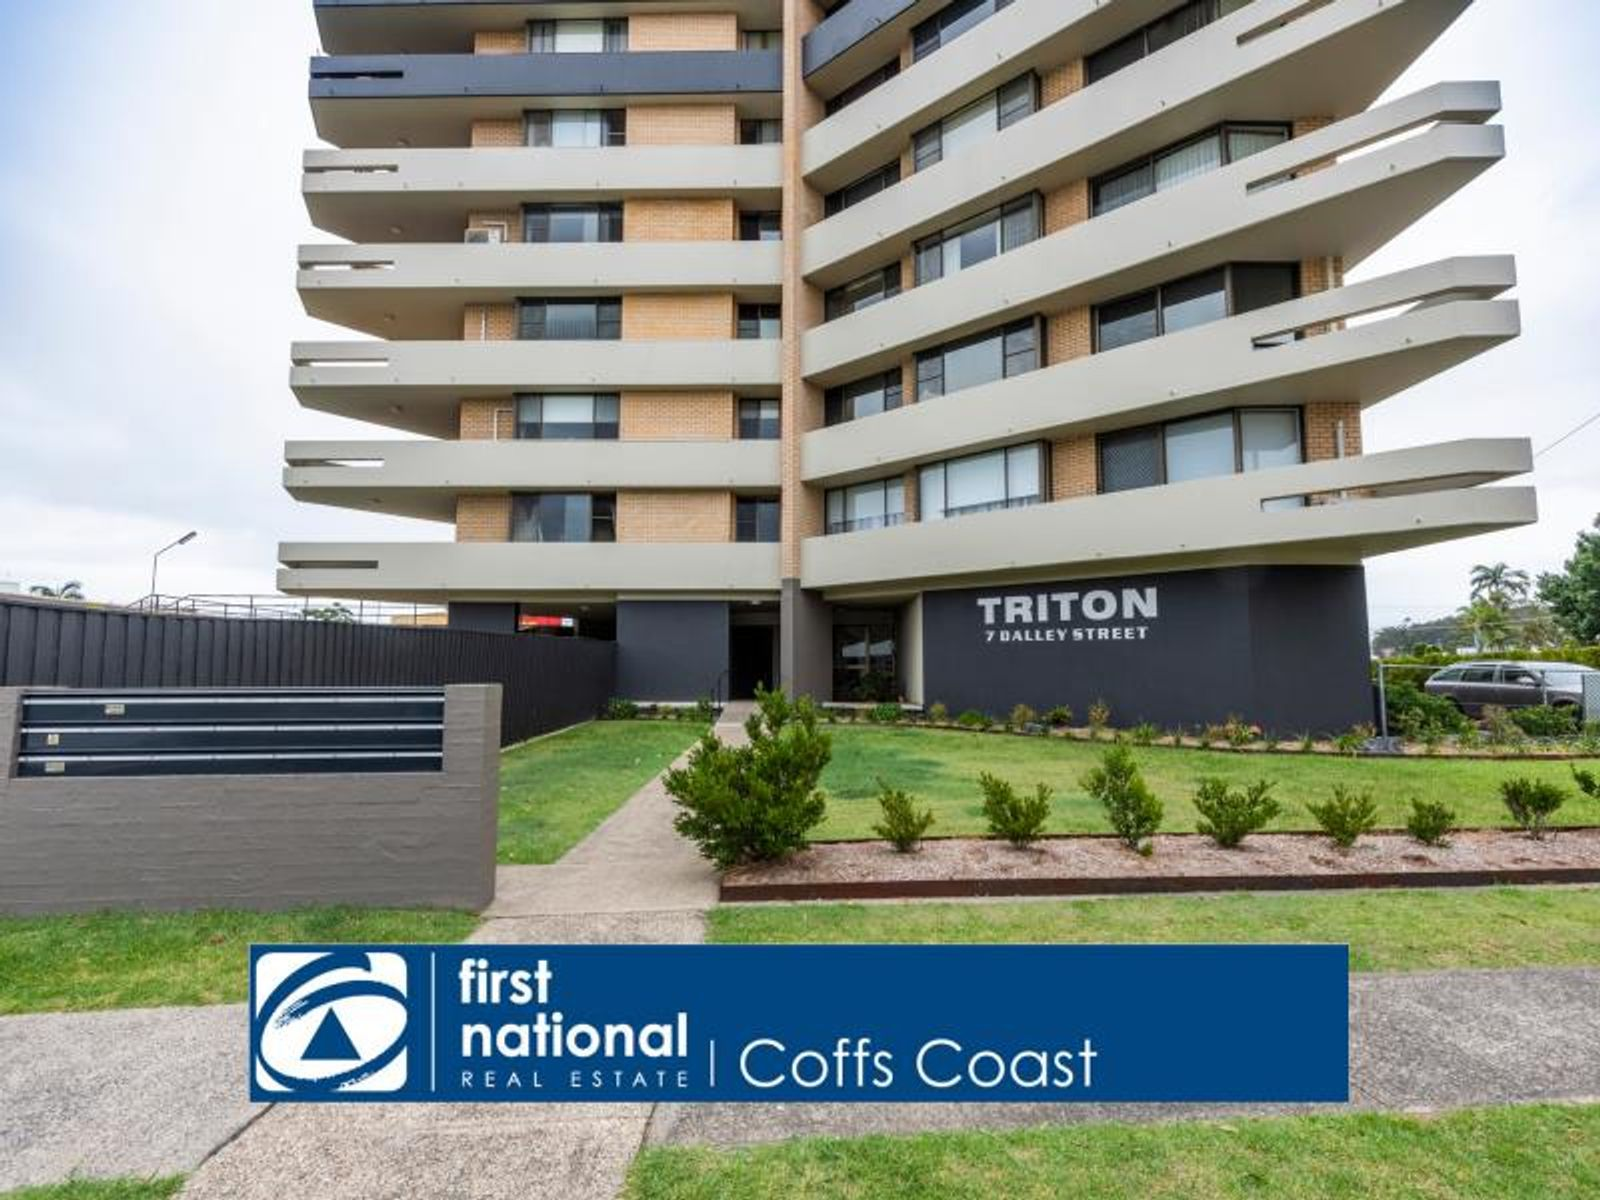 13/7 Dalley Street, Coffs Harbour, NSW 2450